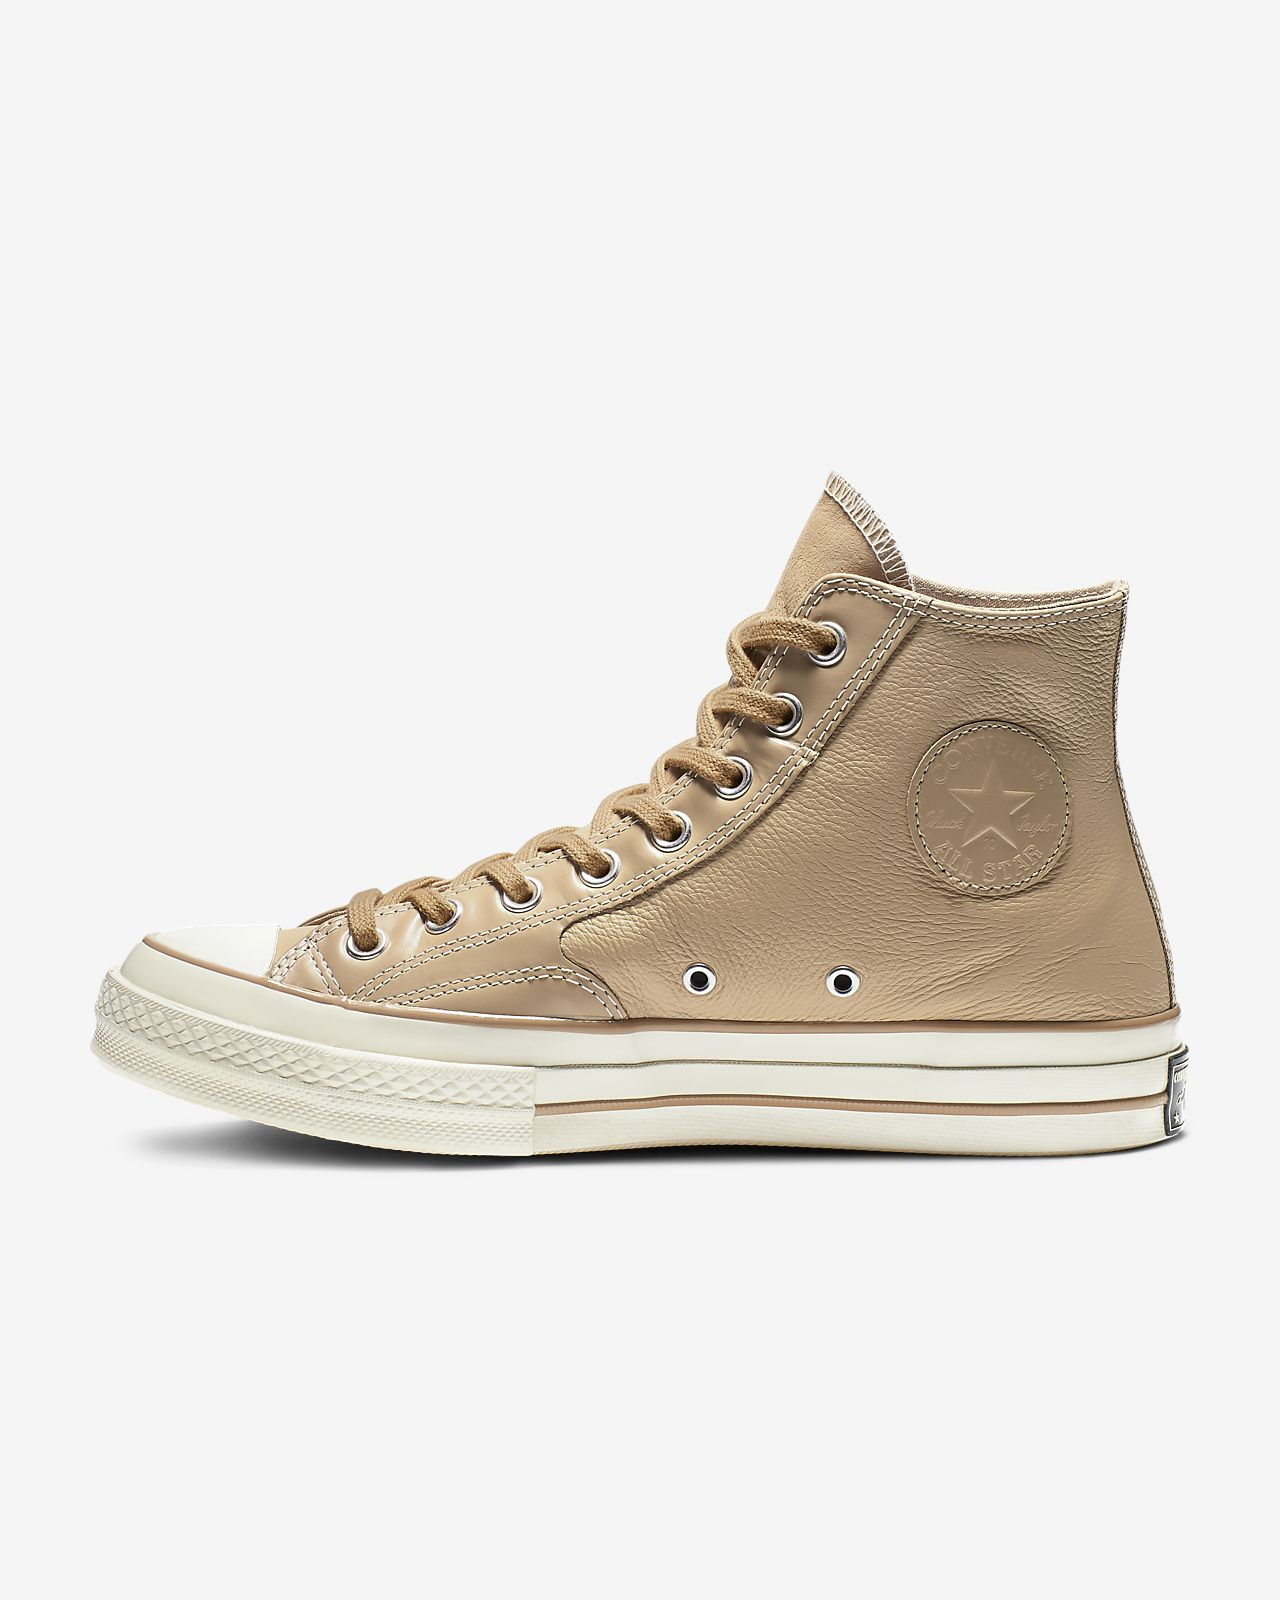 Chuck 70 Luxe Leather High Top Unisex Shoe